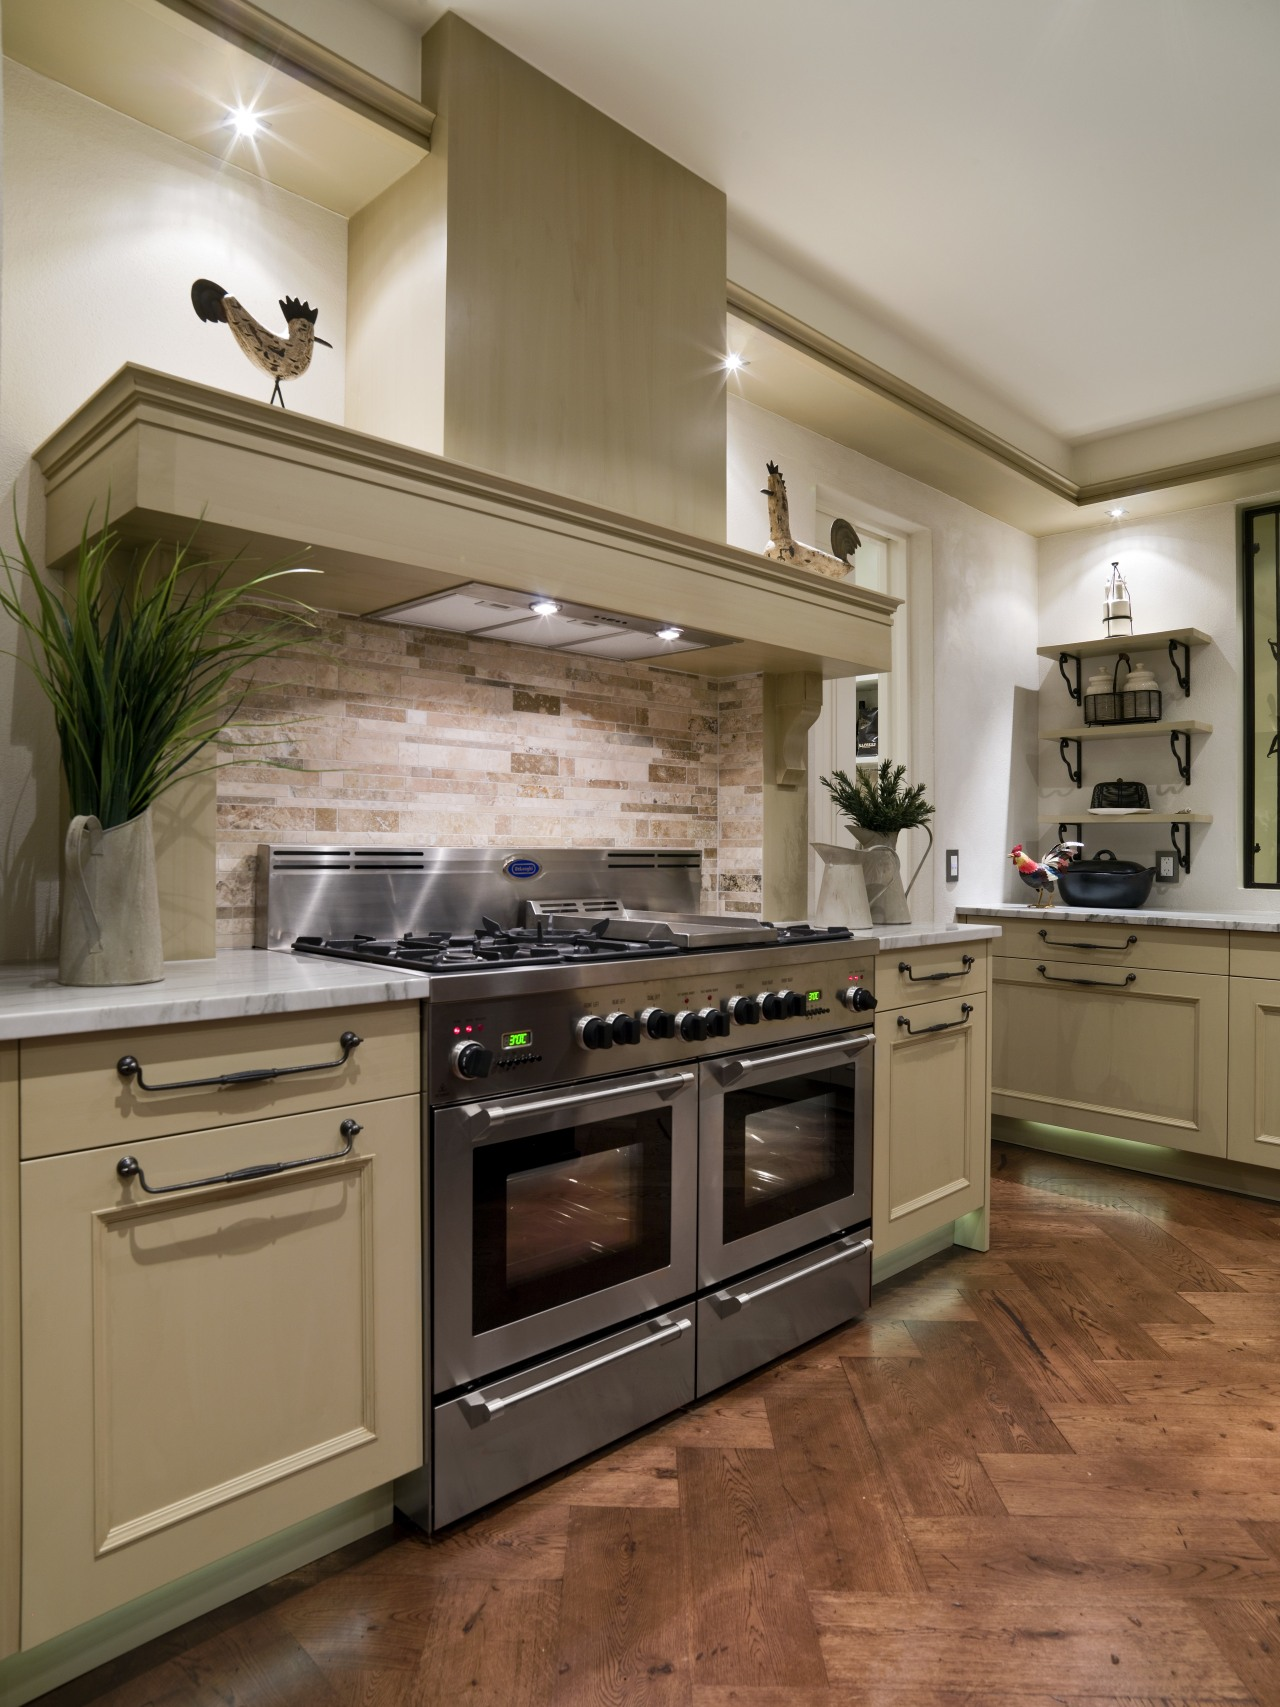 A view of some kitchen appliances from De'Longhi. cabinetry, countertop, cuisine classique, floor, flooring, hardwood, home appliance, interior design, kitchen, kitchen appliance, kitchen stove, major appliance, oven, room, wood flooring, brown, gray